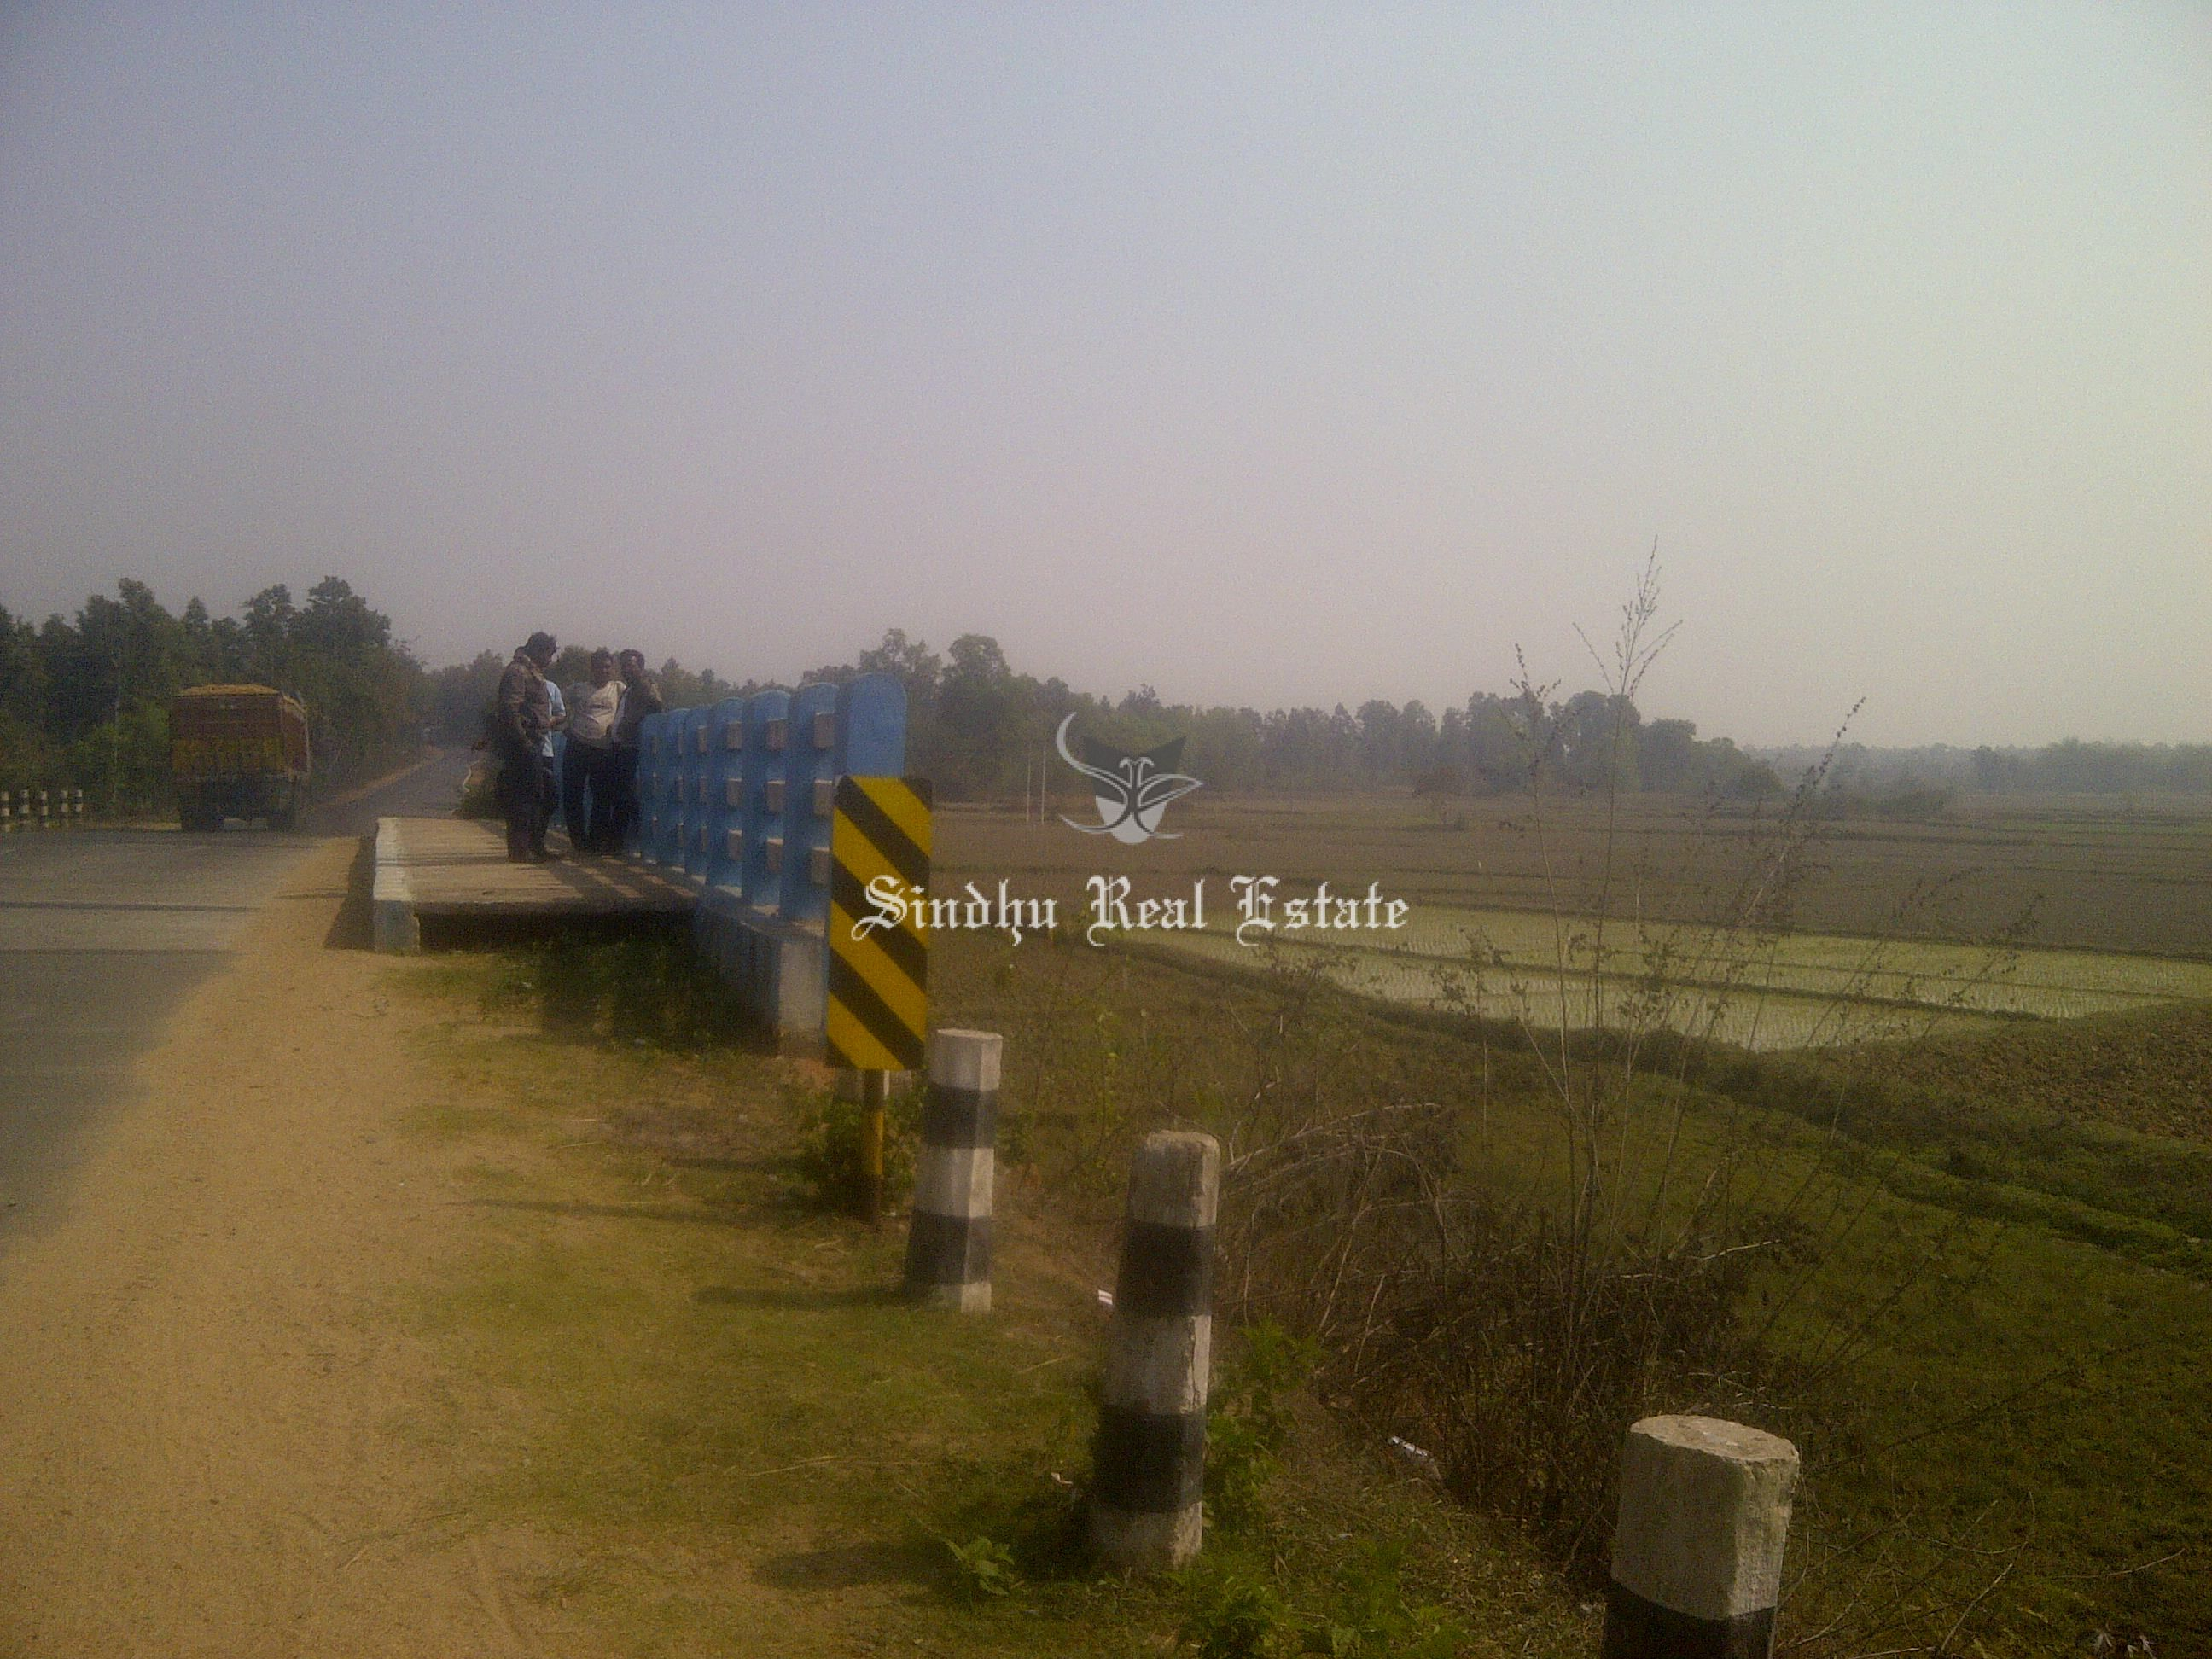 Attractive Residential land in Salt Lake Sector-2 with an affordable range